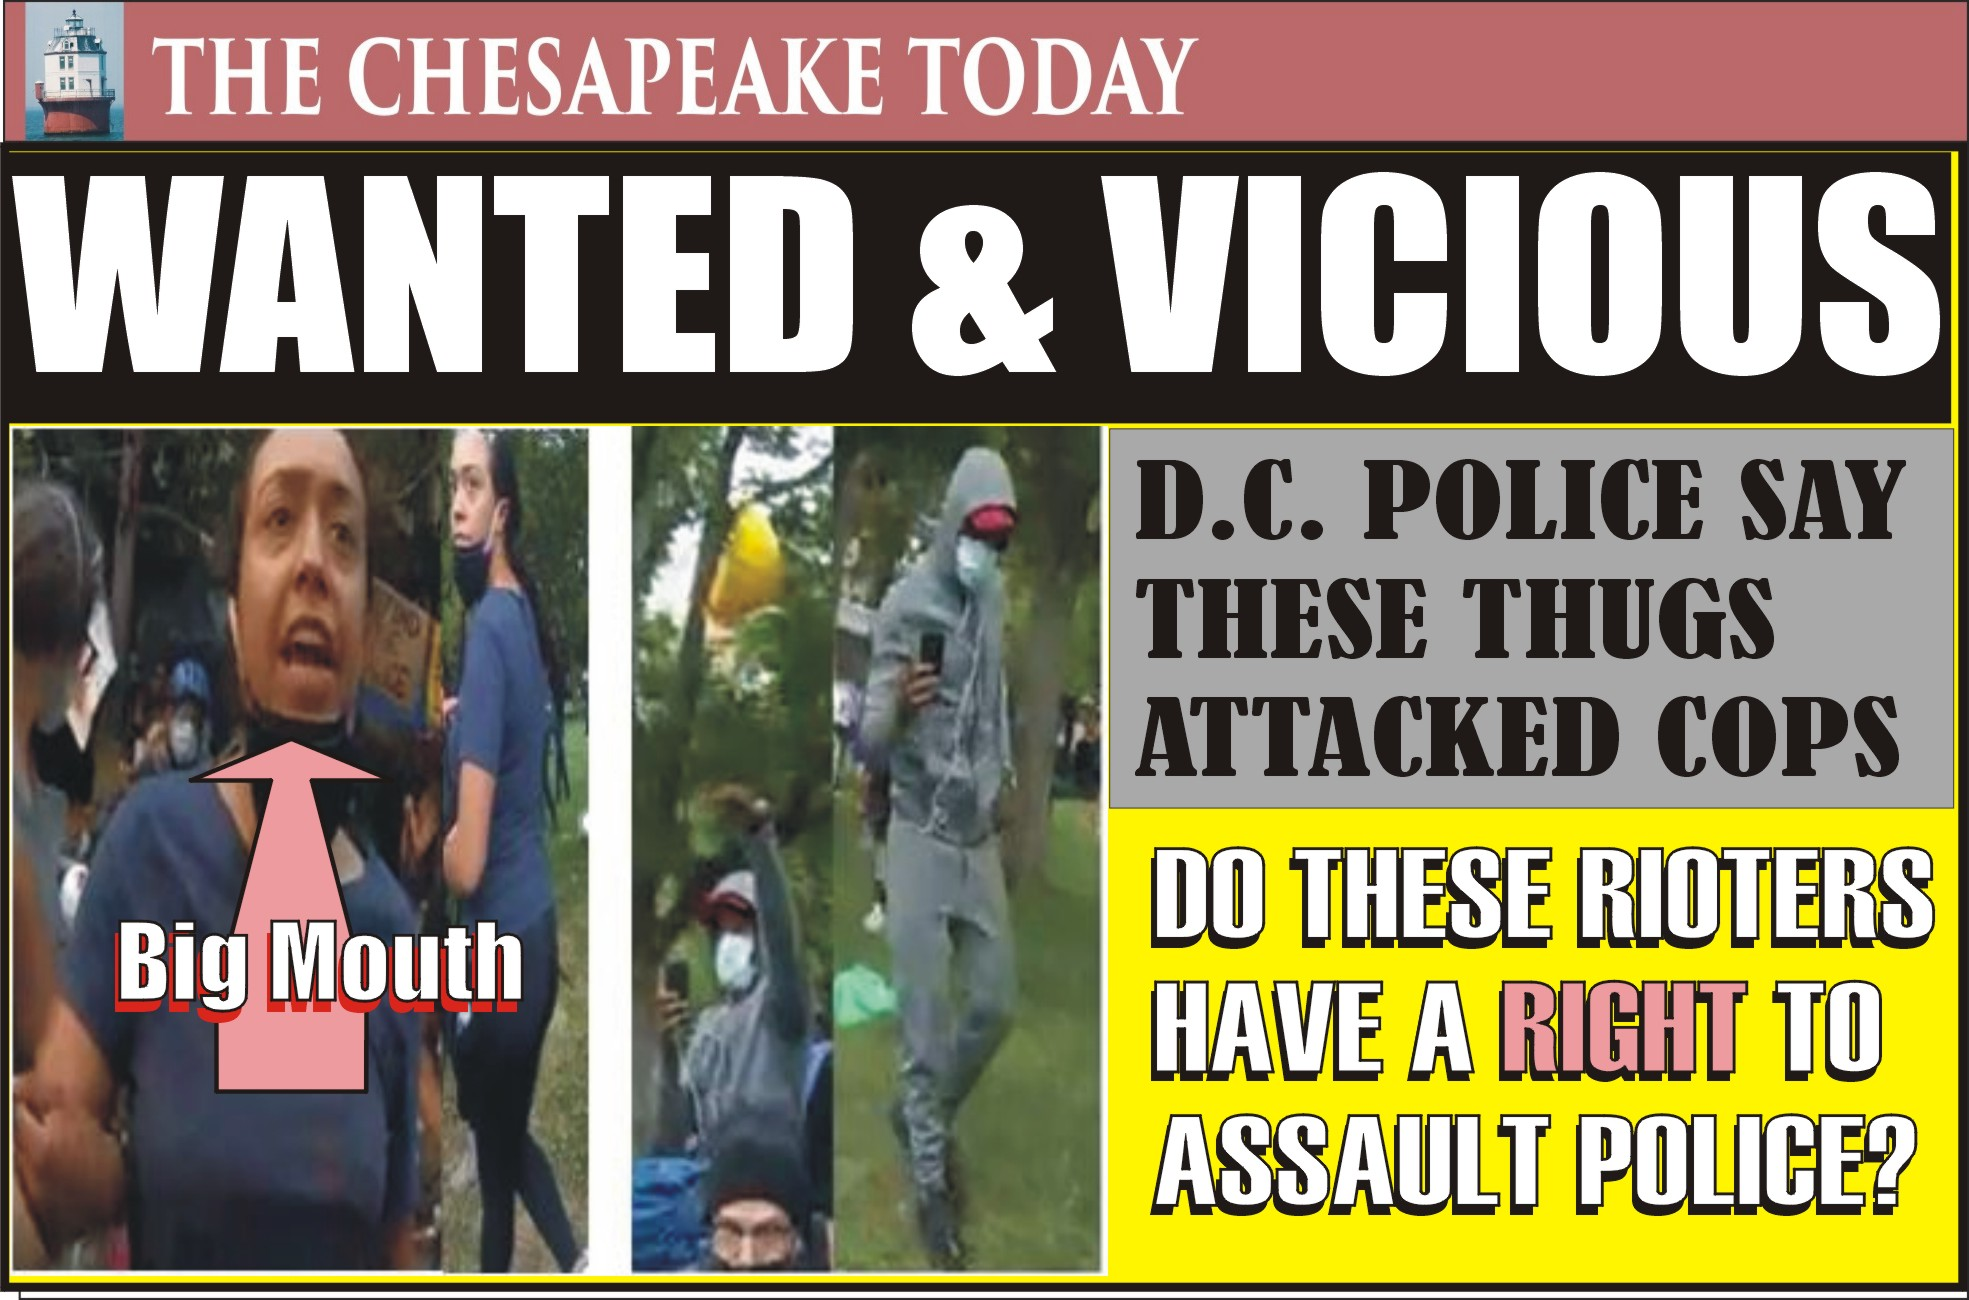 RIOTERS in DC: District Police seek ID on these miscreants who assaulted police officers in the area of Lafayette Square